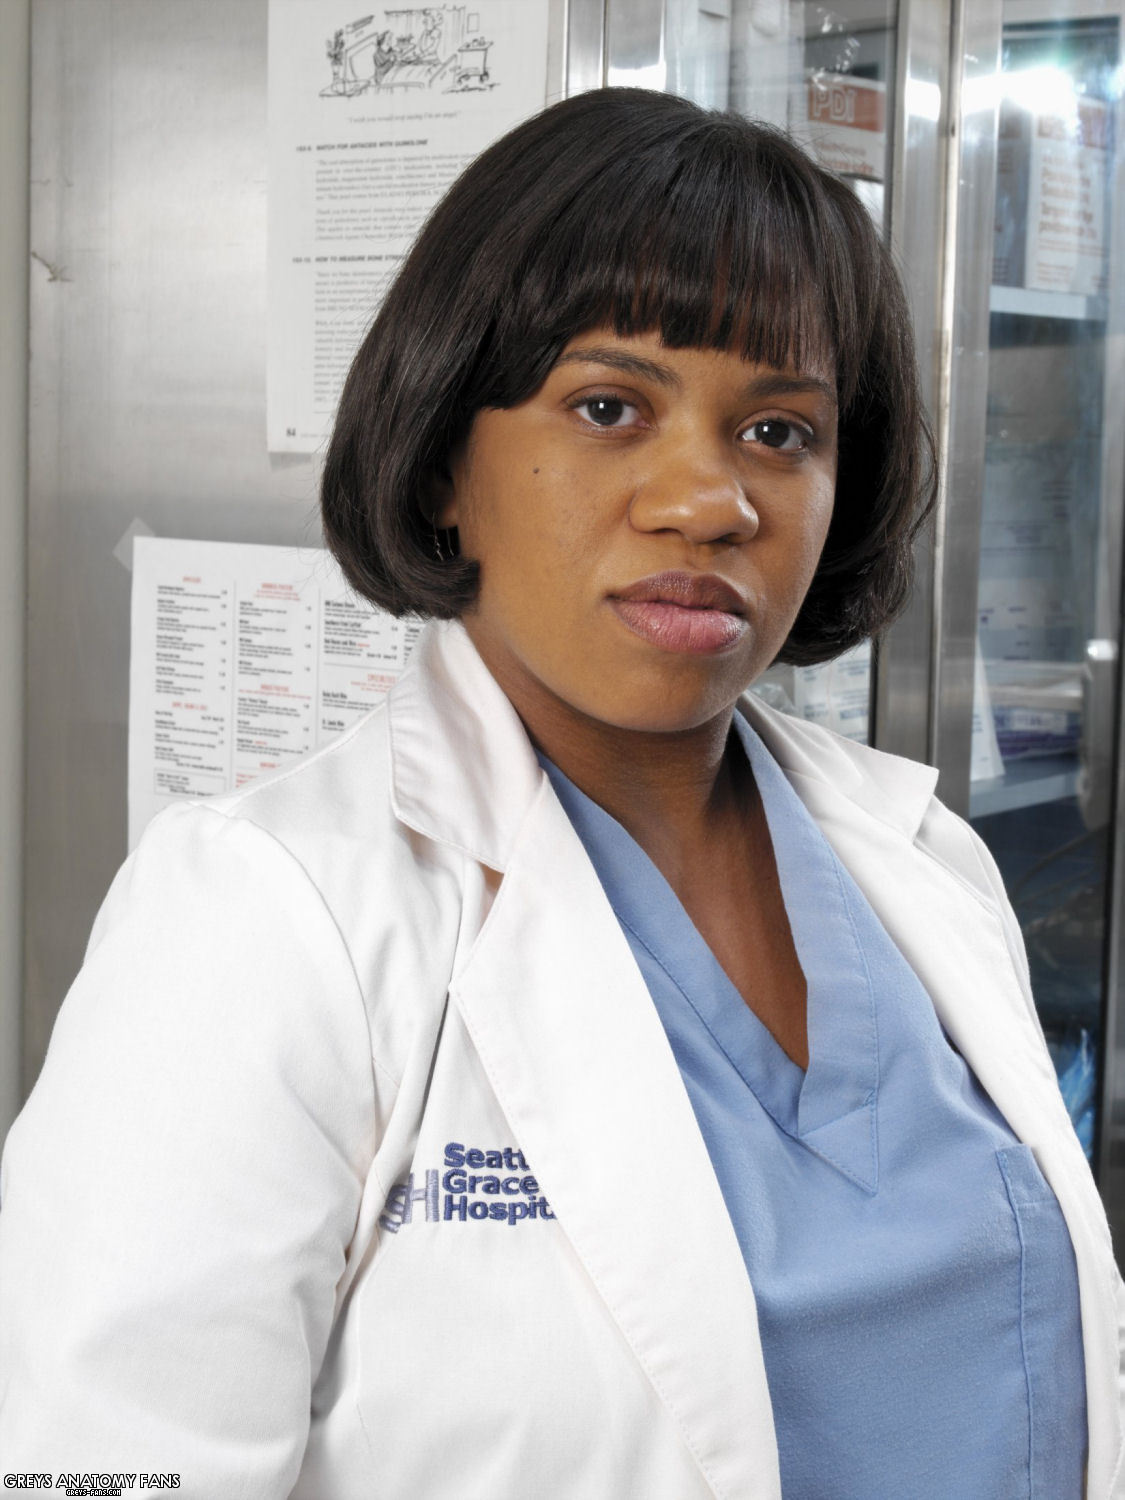 Dr miranda bailey images hd wallpaper and background for The bailey